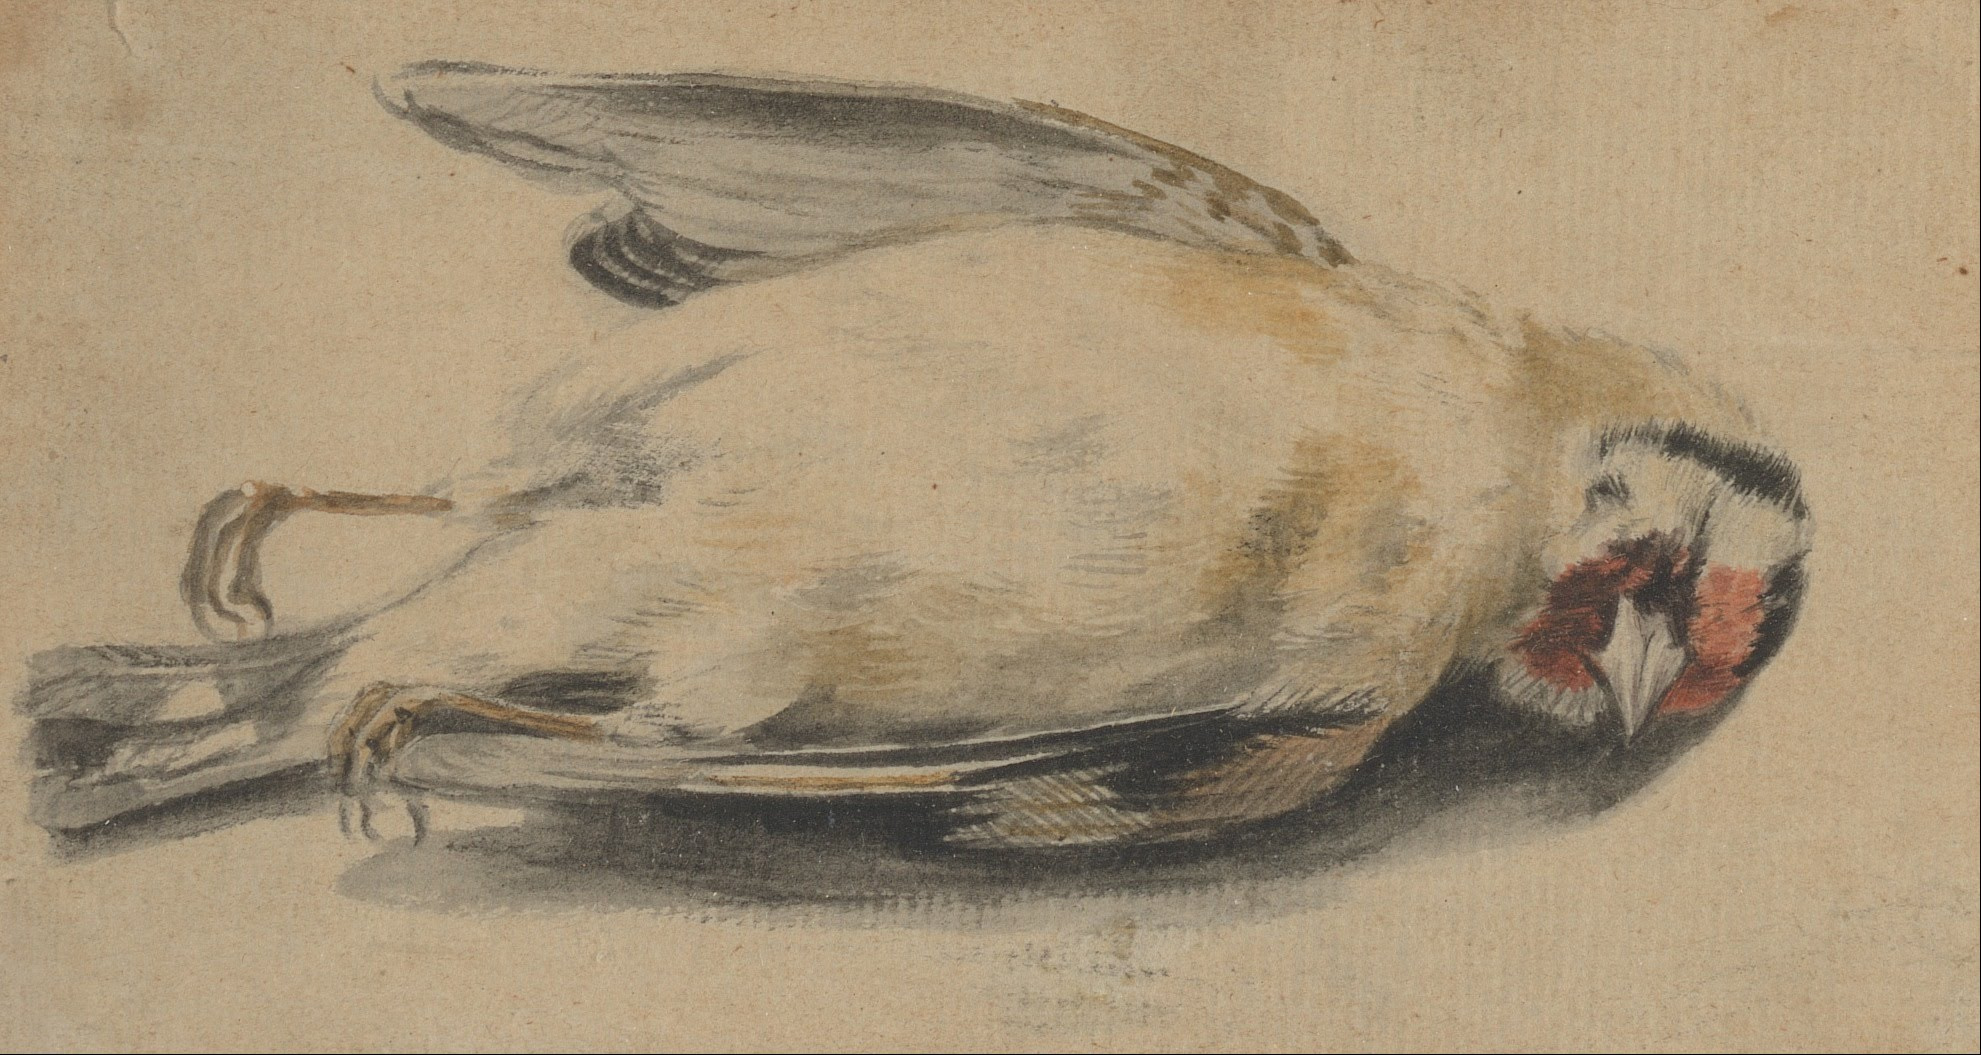 Paul_Sandby_-_A_Dead_Bird_-_Google_Art_Project